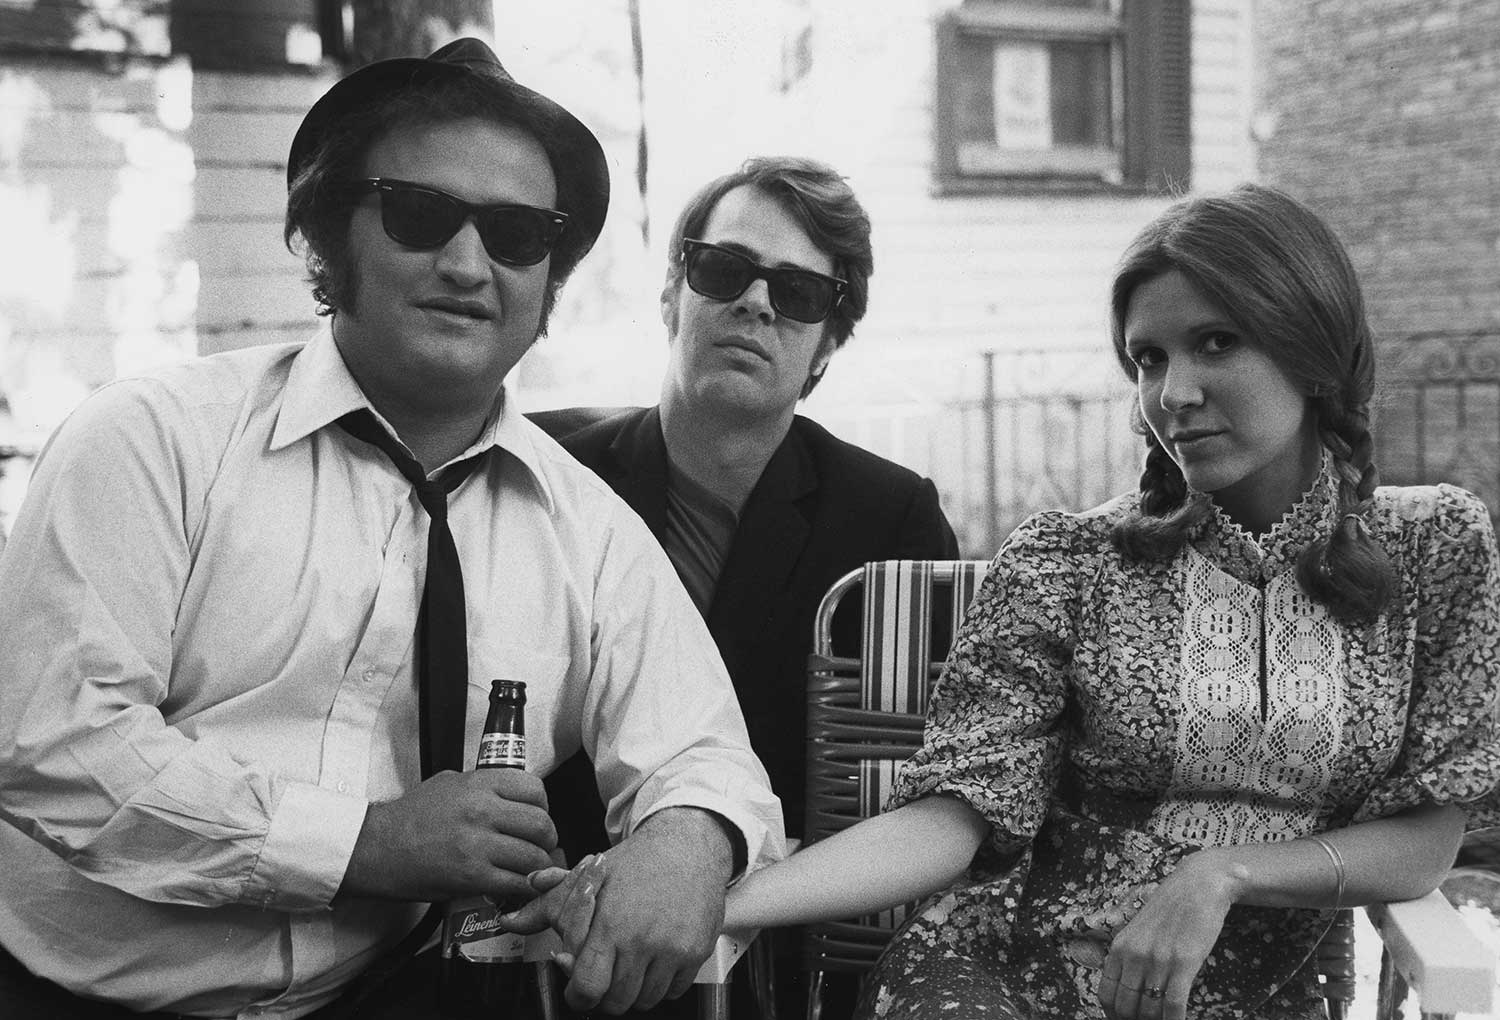 Also seen in THE EMPIRE STRIKES BACK the same year, Carrie Fisher (Dan Aykroyd's girlfriend at the time) appeared in THE BLUES BROTHERS as a gun-toting woman with a mysterious grudge.